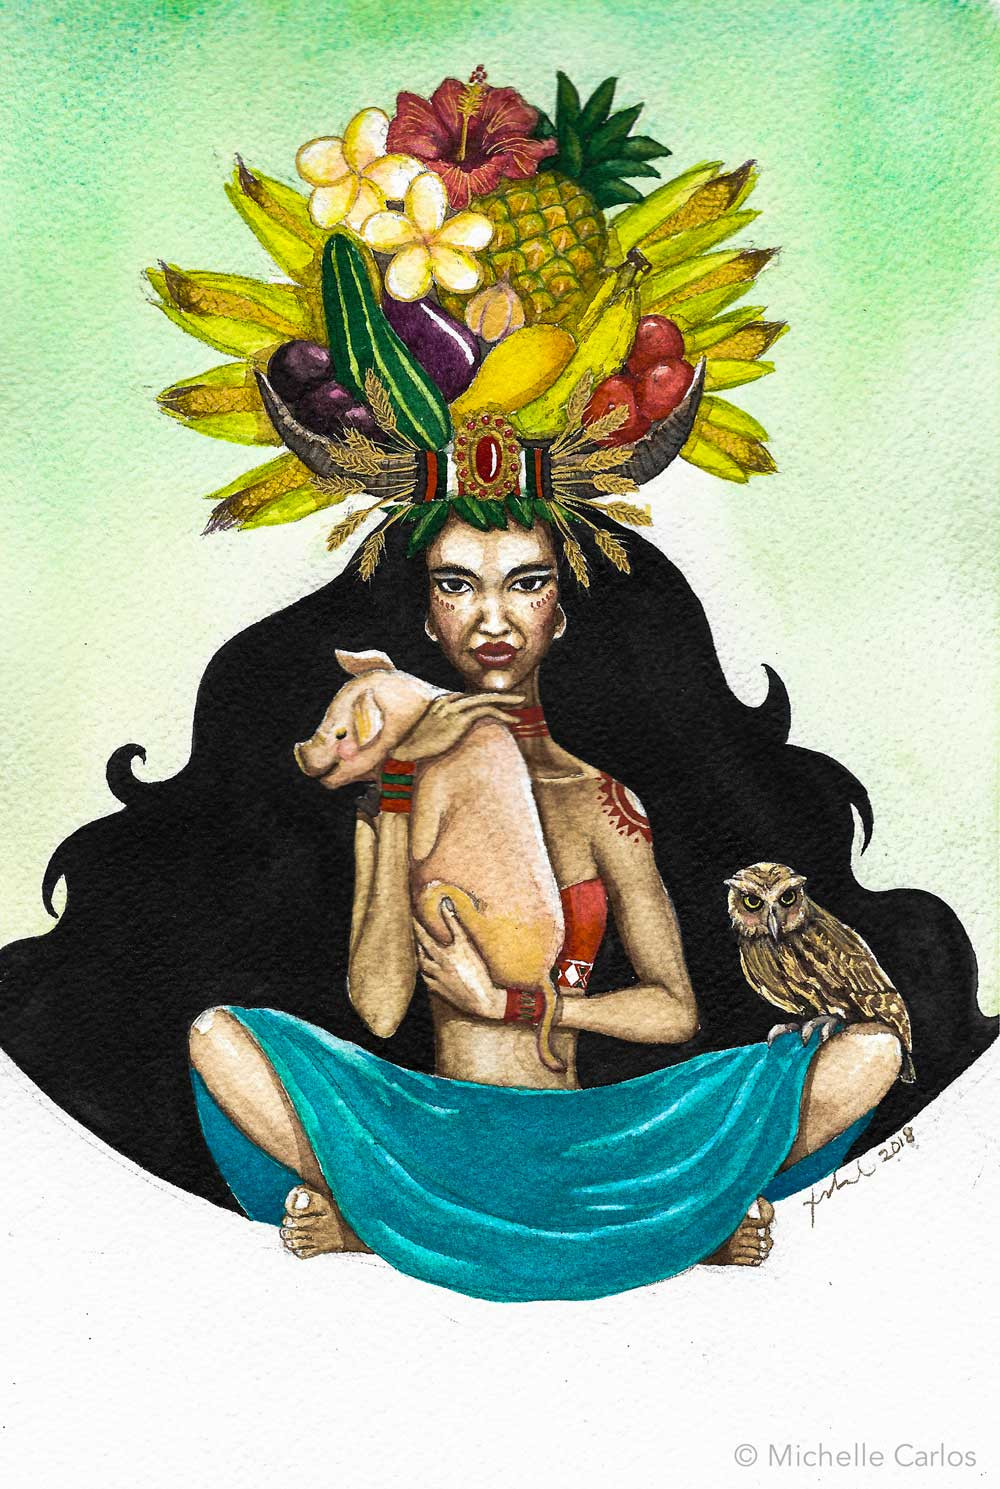 A cross-seated black-haired woman with fruits and flowers headdress holding a piglet and an owl perched on her lap